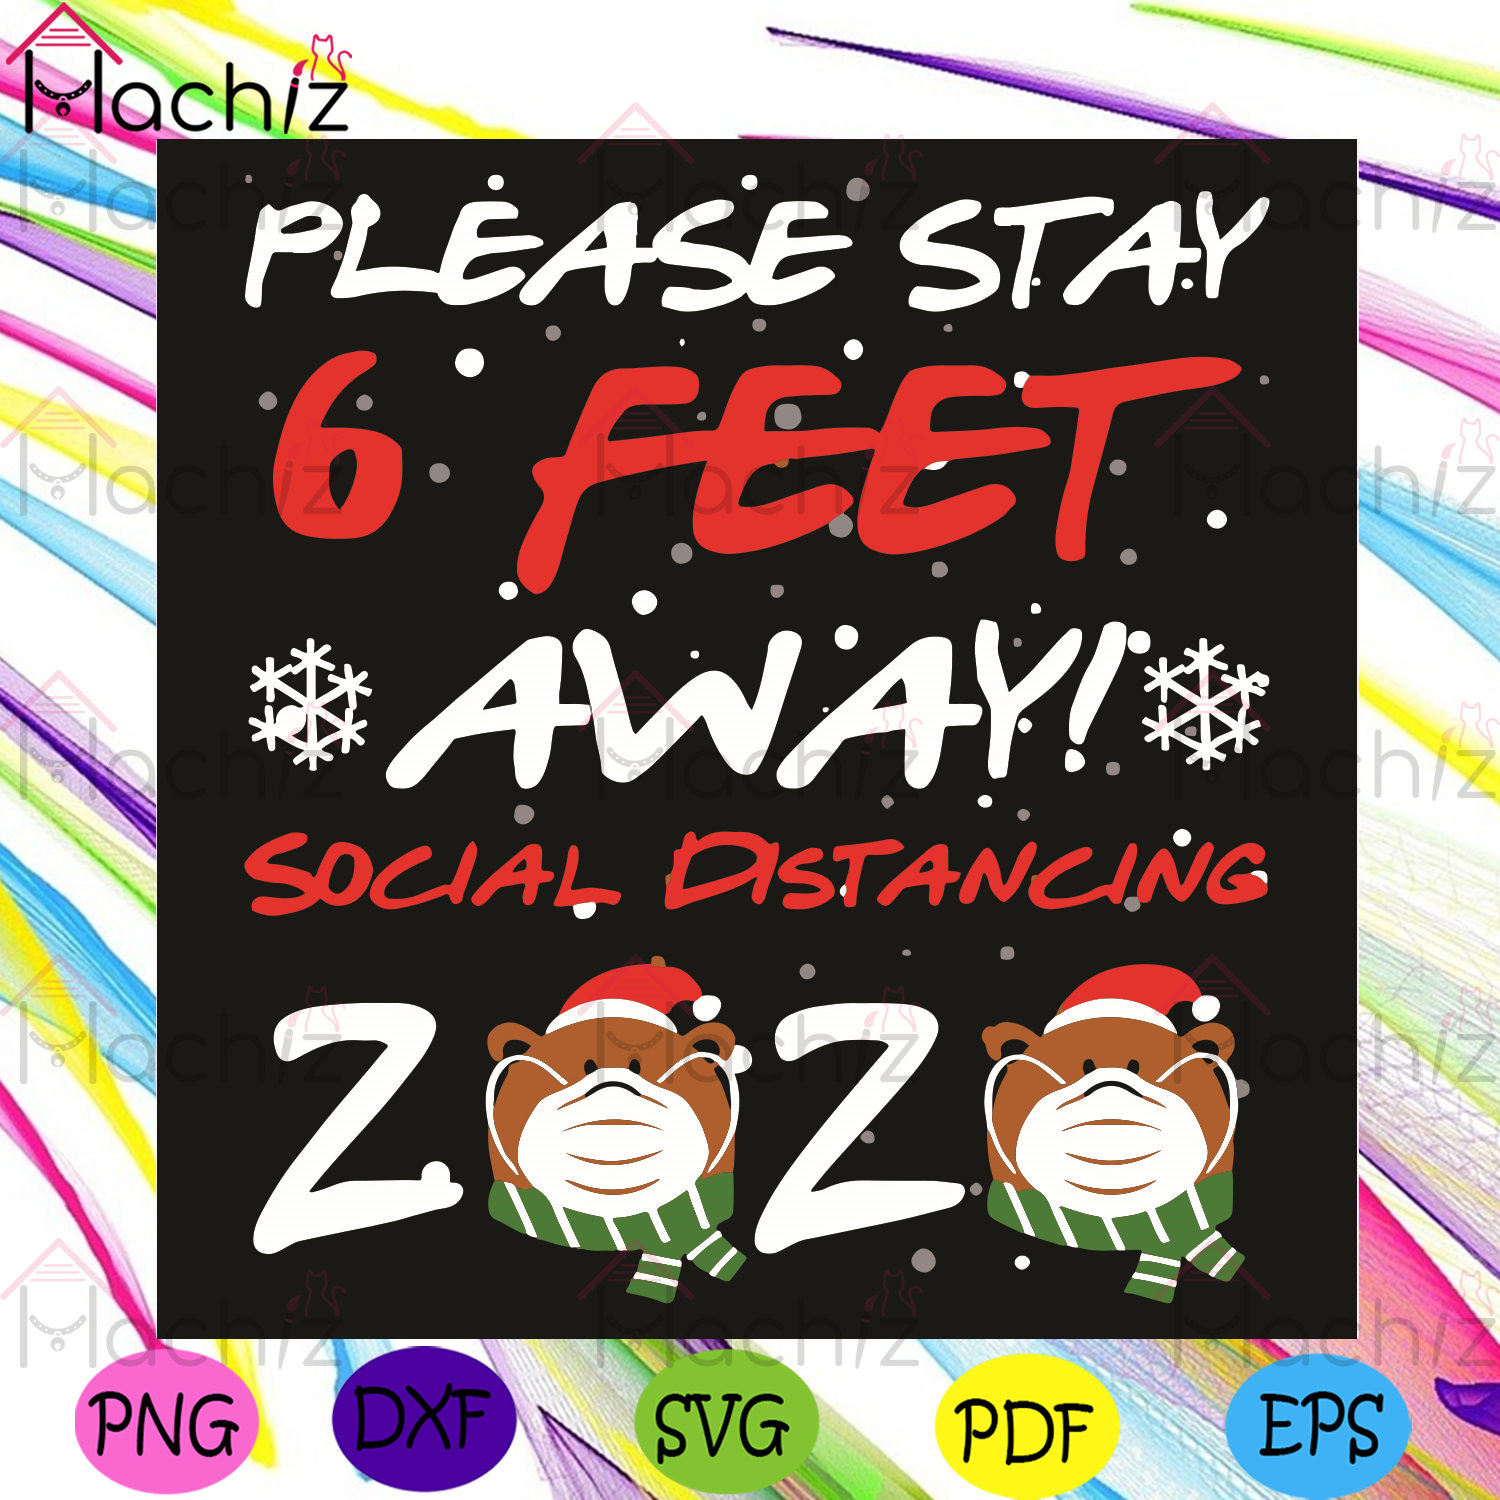 Please Stay 6 Feet Away Social Distancing 2020, Christmas Svg, 2020 Svg, Christmas 2020 Svg, Santa Claus Svg, Covid Svg, Quarantined Christmas Svg, Stay Home Svg, Santa Claus Svg, Coronavirus Svg, Social Distance Svg